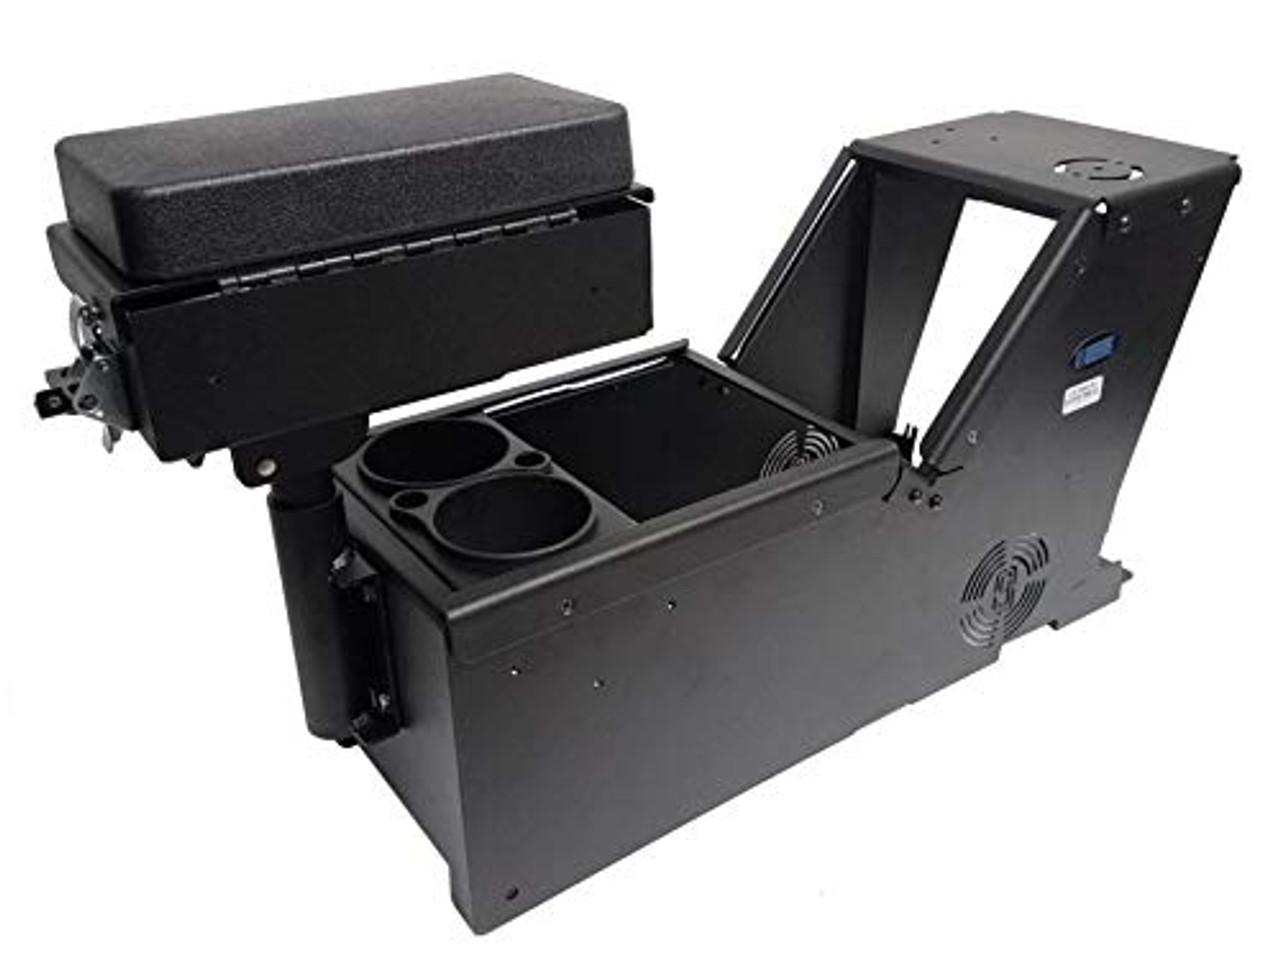 Kit, Ford PI Utility Console Box and Cup Holder. Includes 3 faceplates and 3 Filler Panels. (7170-0166-XX) | 0506X4Z6U4H